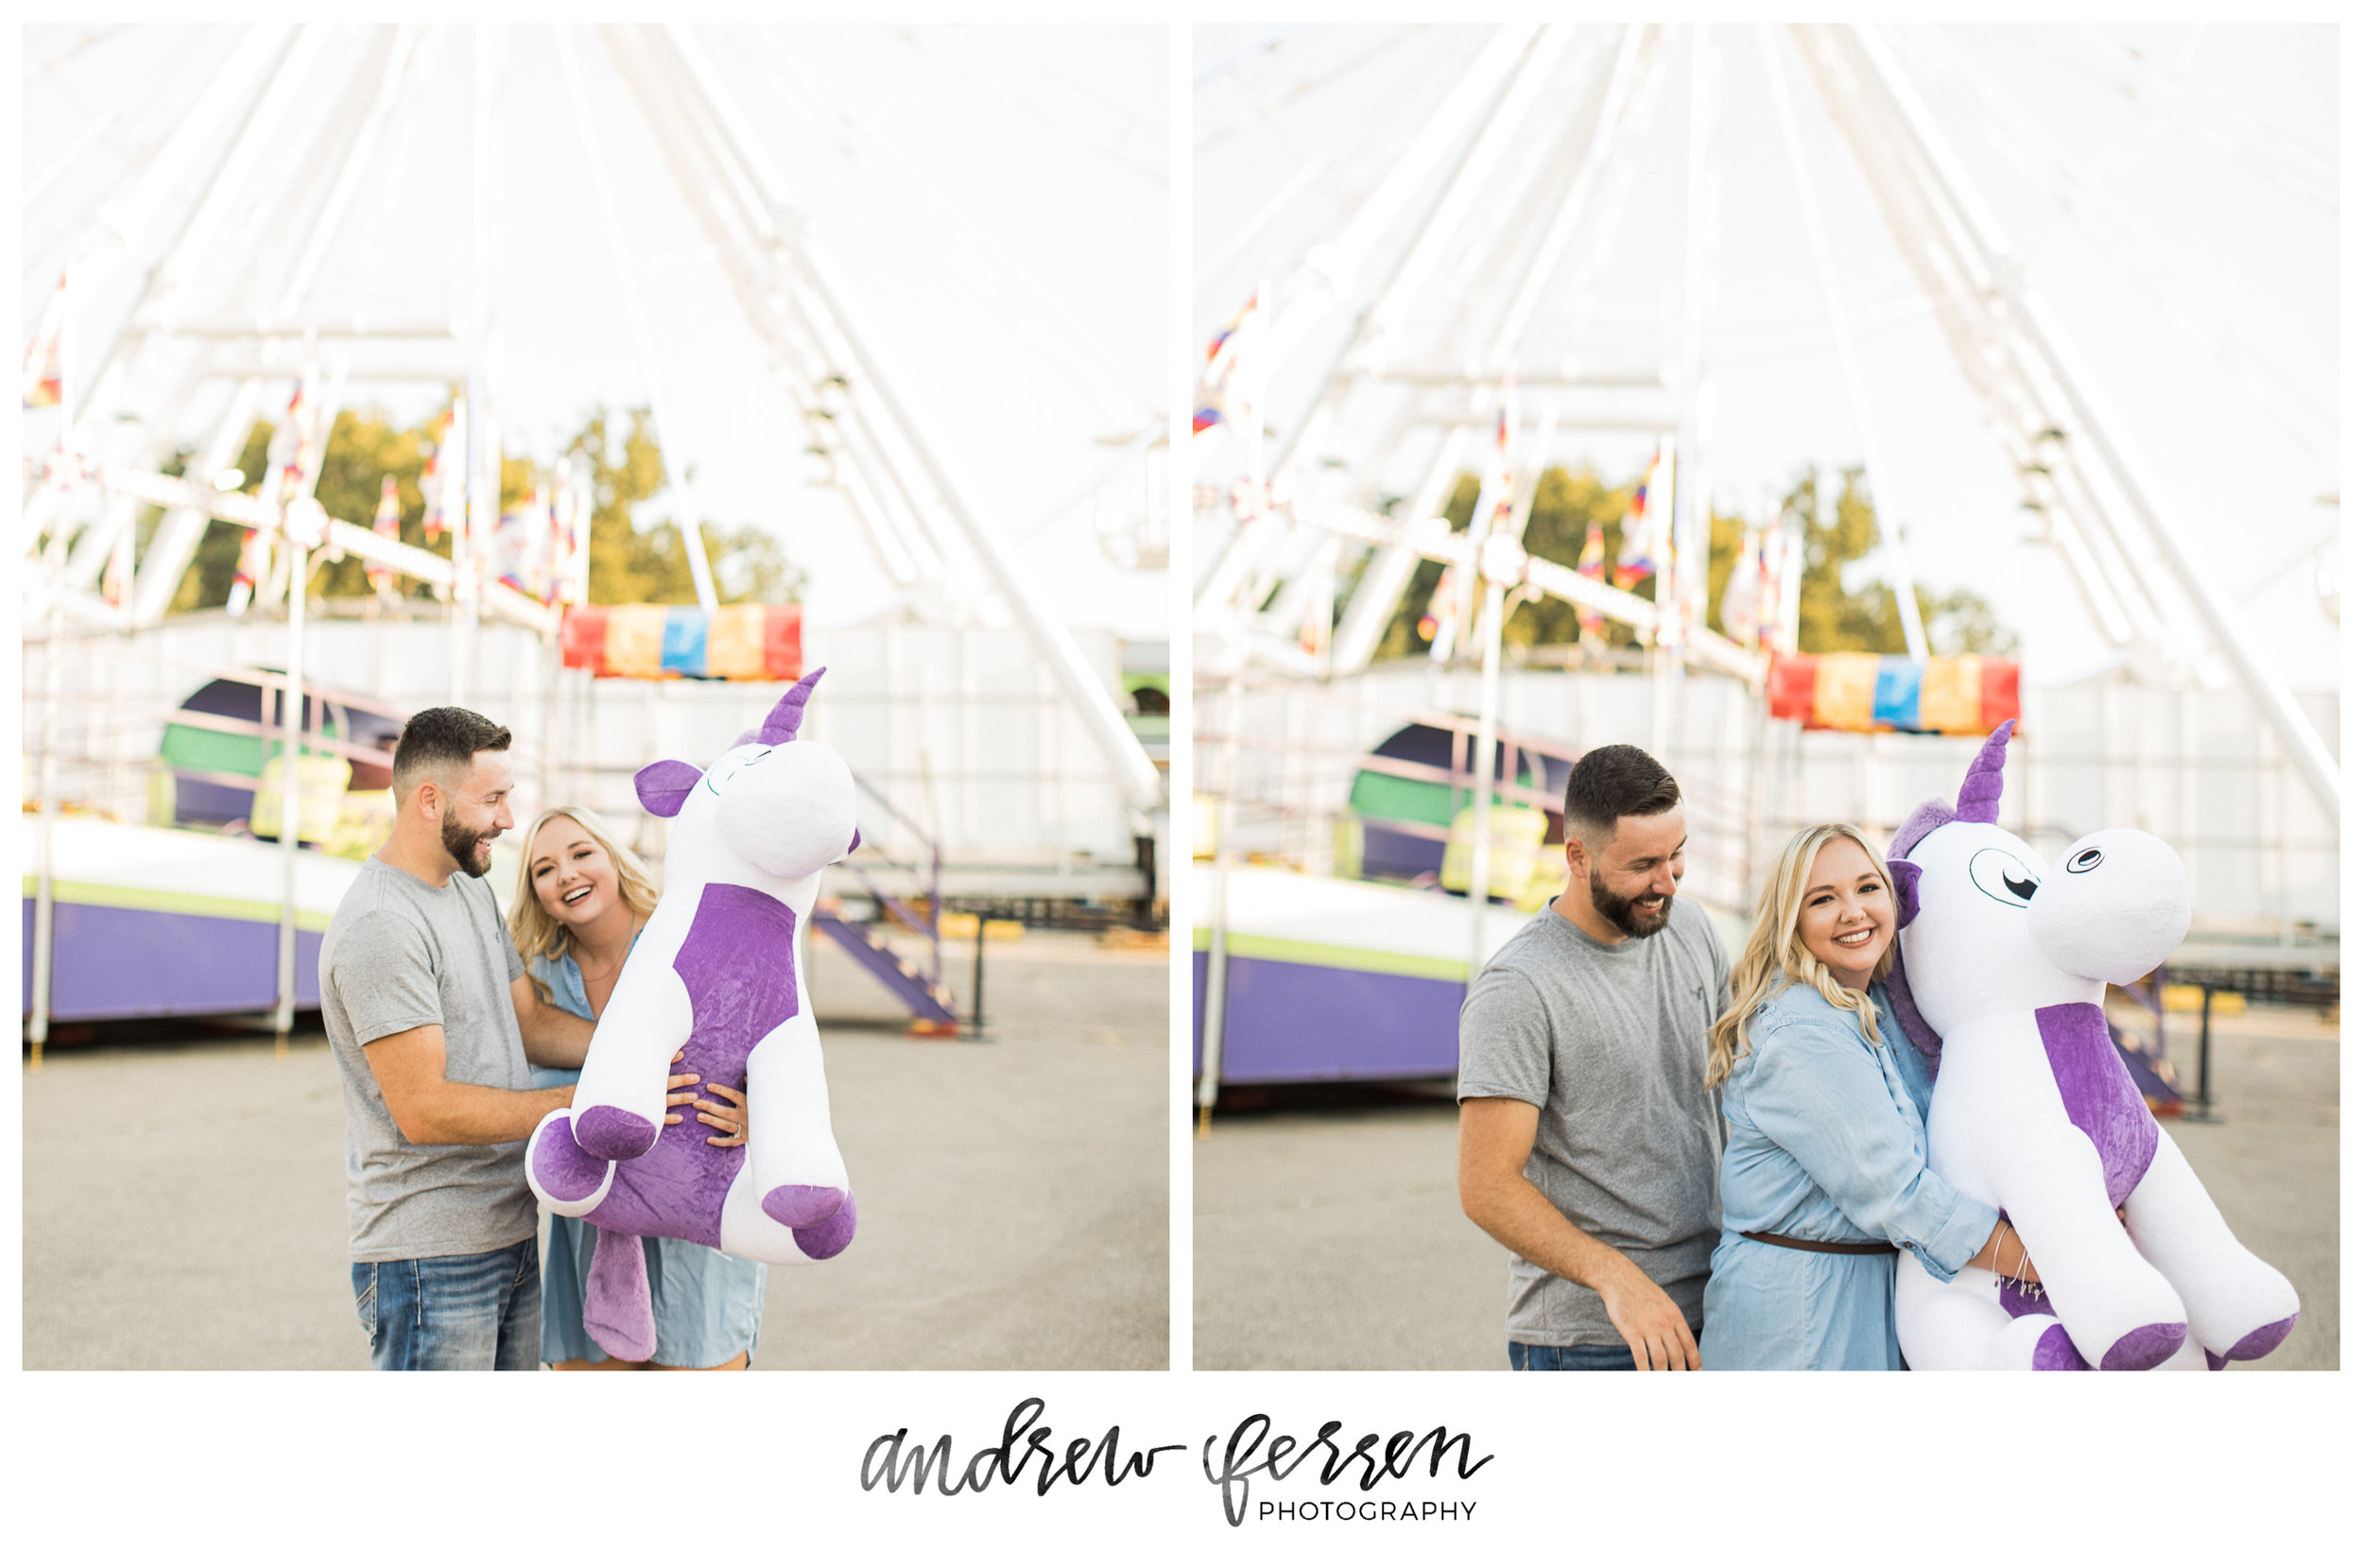 8 Iowa State Fairgrounds Engagement Session Iowa Wedding Photographer Andrew Ferren Photography Pinterest.jpg